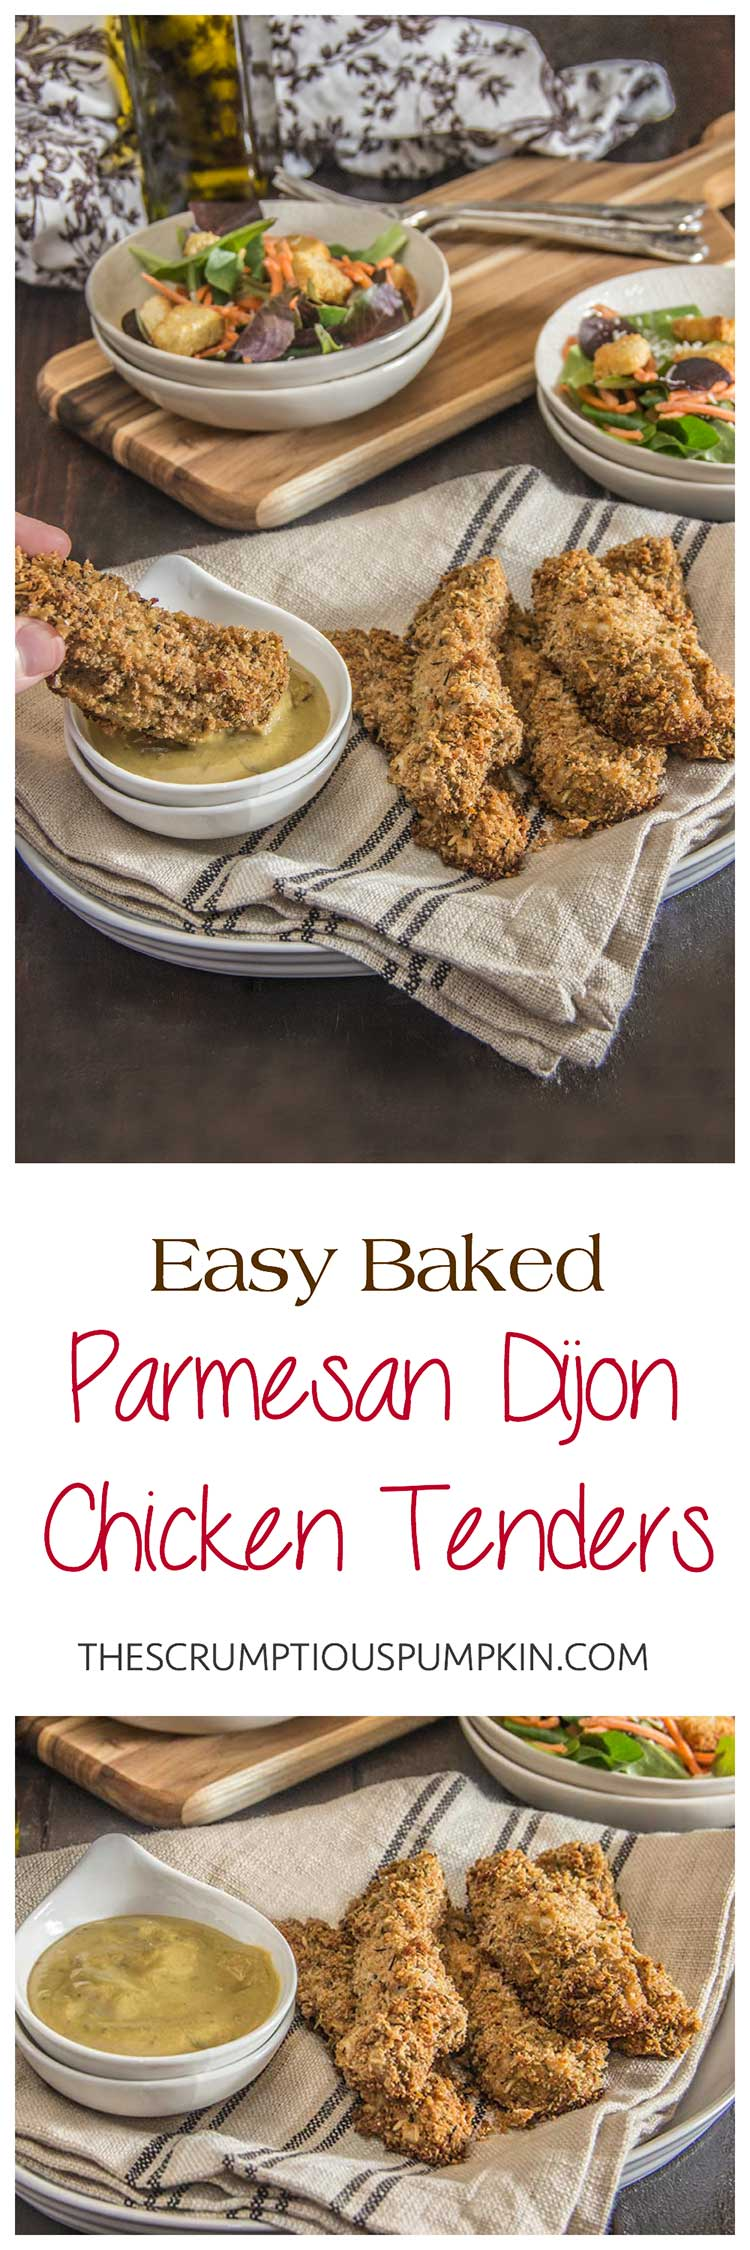 Easy-Baked-Dijon-Parmesan-Chicken-Tenders